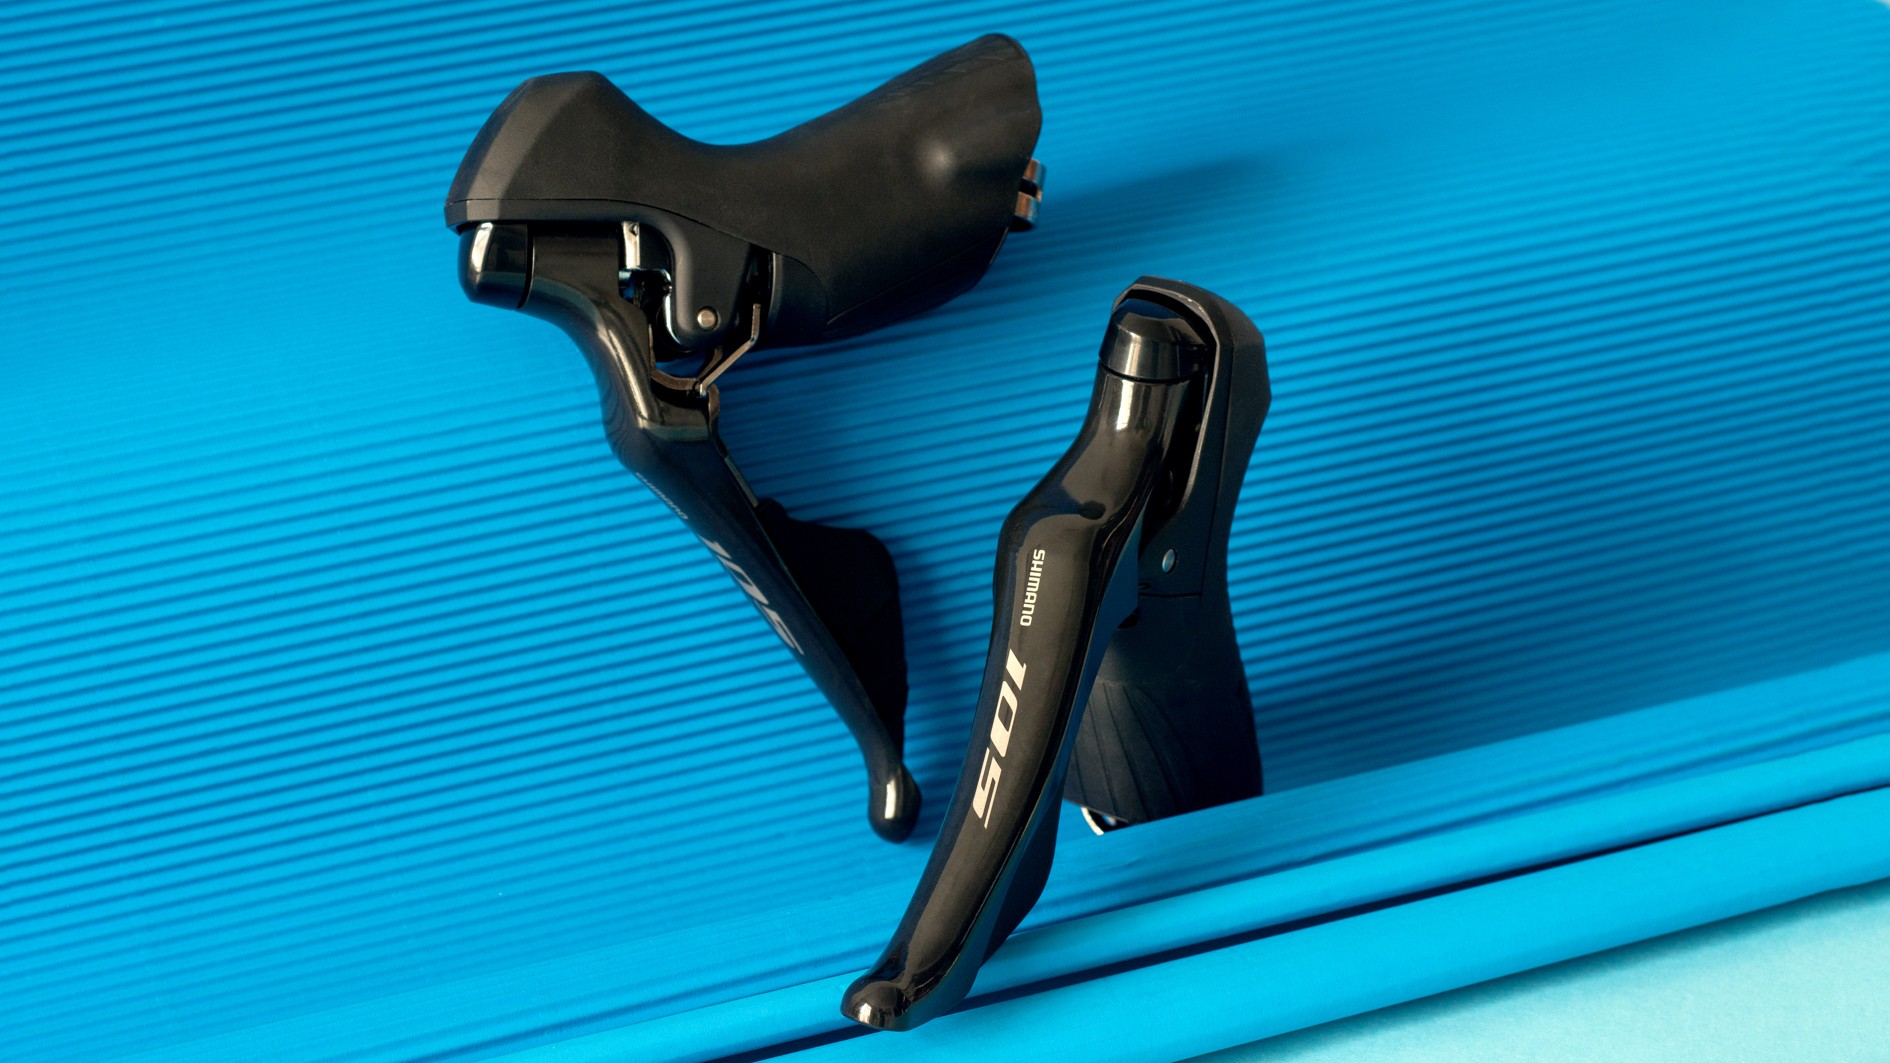 The new Shimano 105 shifters share the same shape as its updated Dura-Ace and Ultegra equivelants